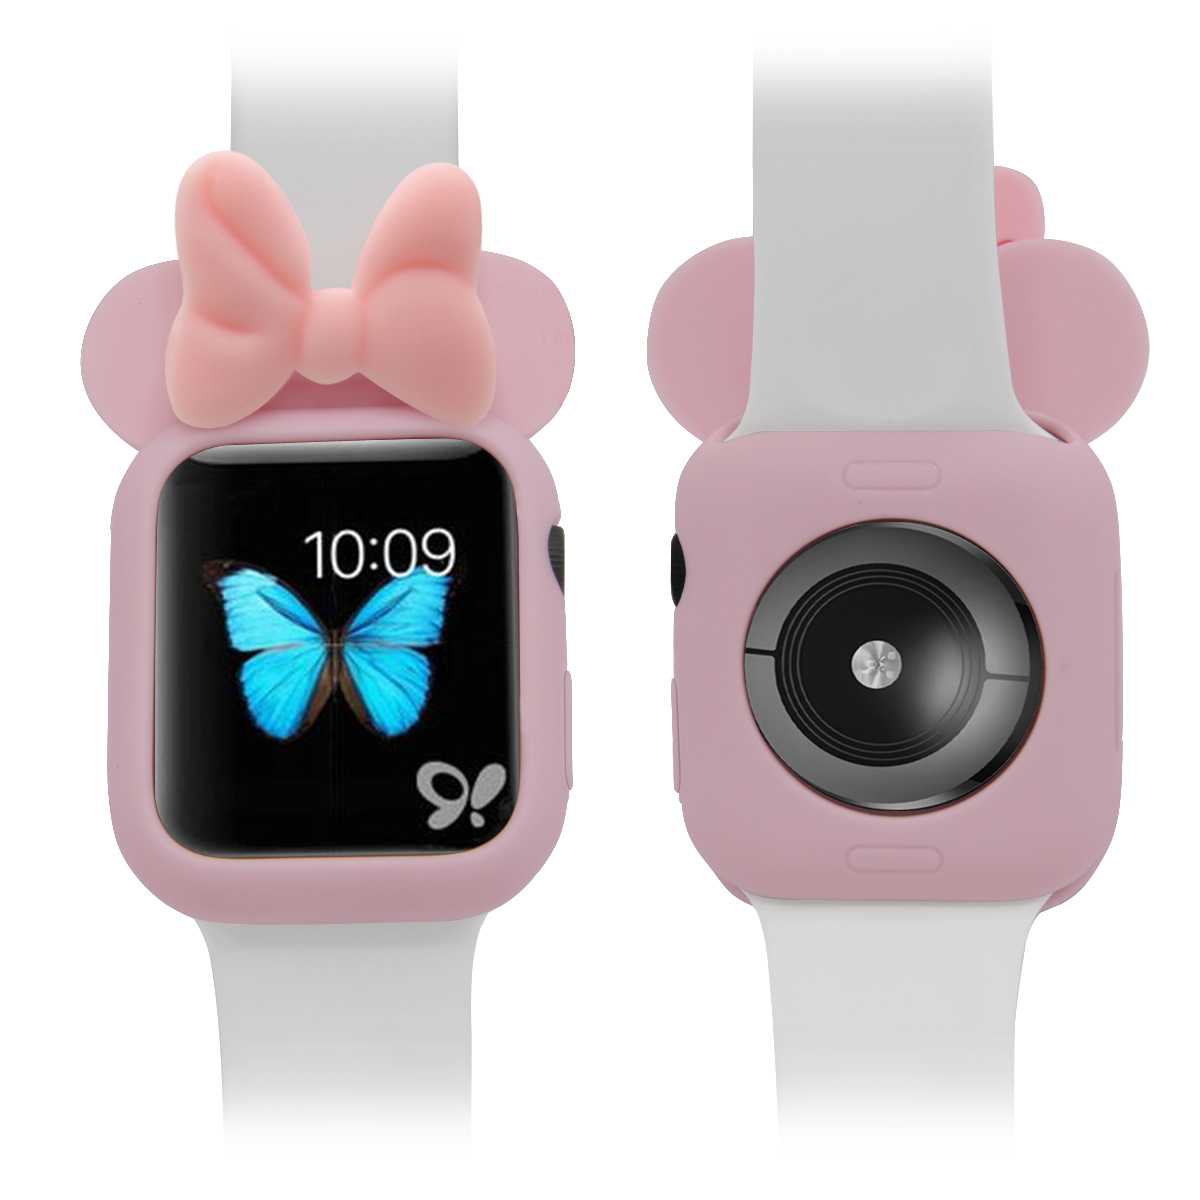 Serilabee MI NI <font><b>CASE</b></font> for <font><b>apple</b></font> <font><b>watch</b></font> 4 5/<font><b>3</b></font>/2/1 40MM 44MM Lovely protect Tpu <font><b>cases</b></font> for iwatch series 4 5/<font><b>3</b></font>/2/1 image